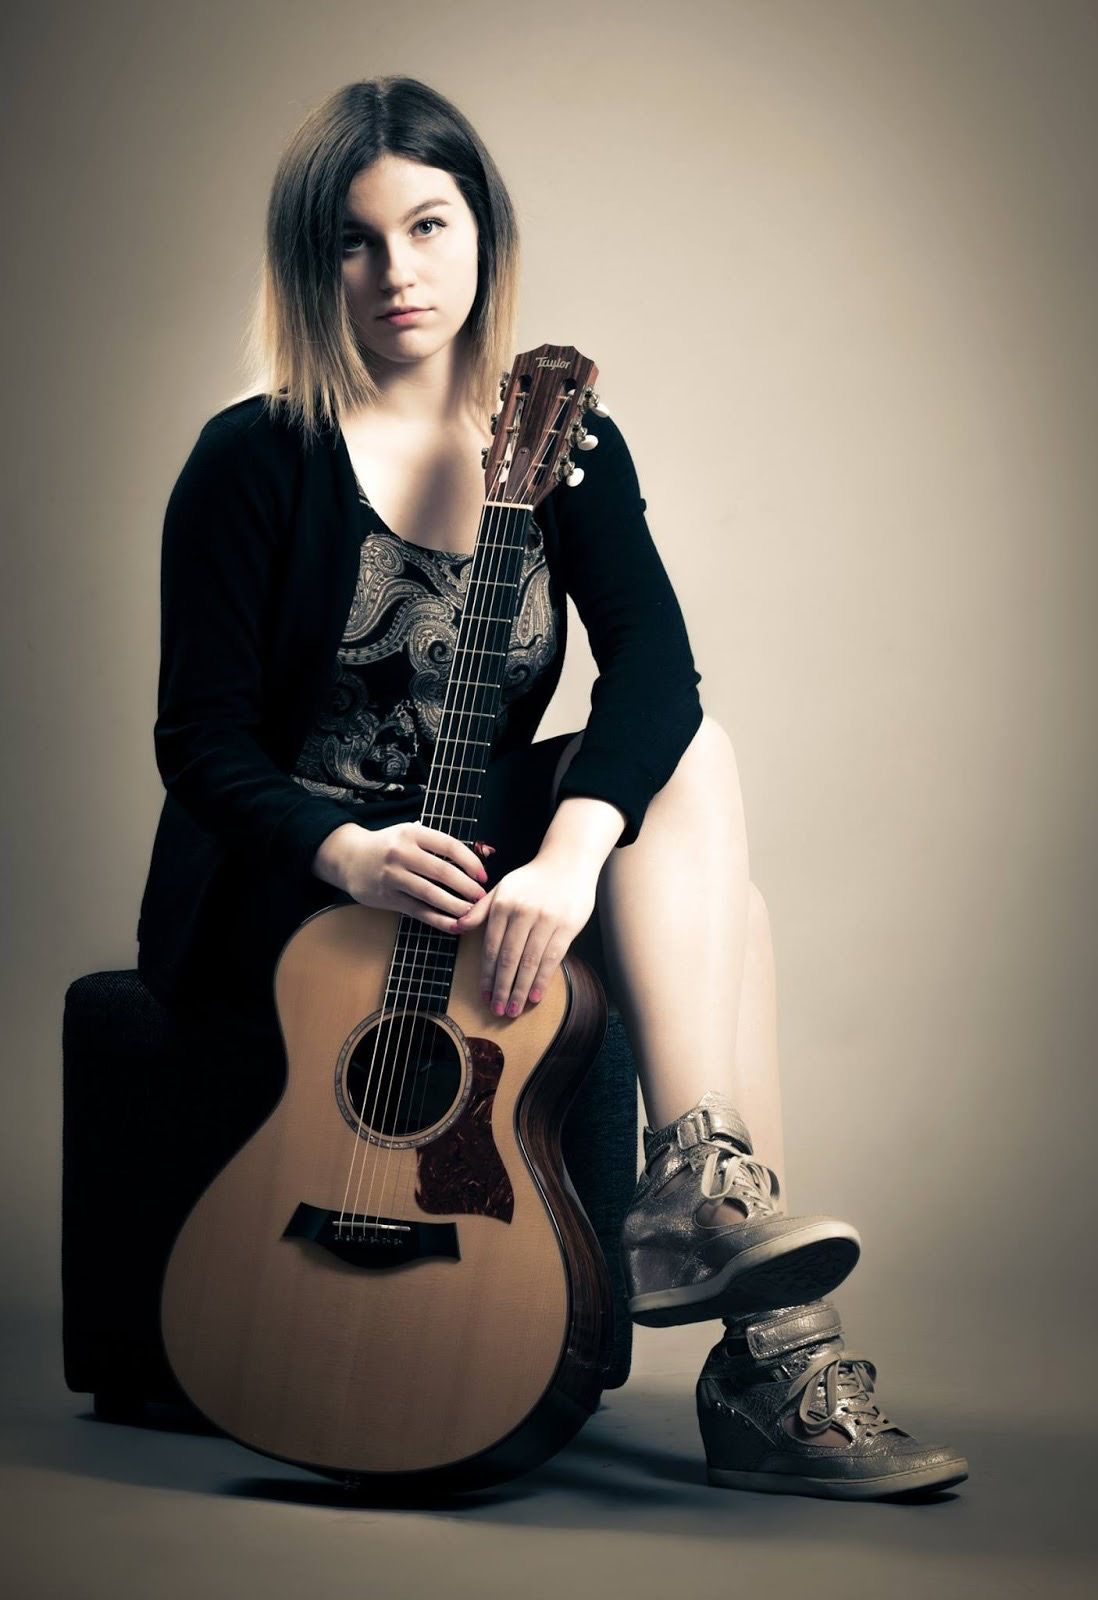 Gabriella Quevedo - She revives goldie oldies on her guitar.